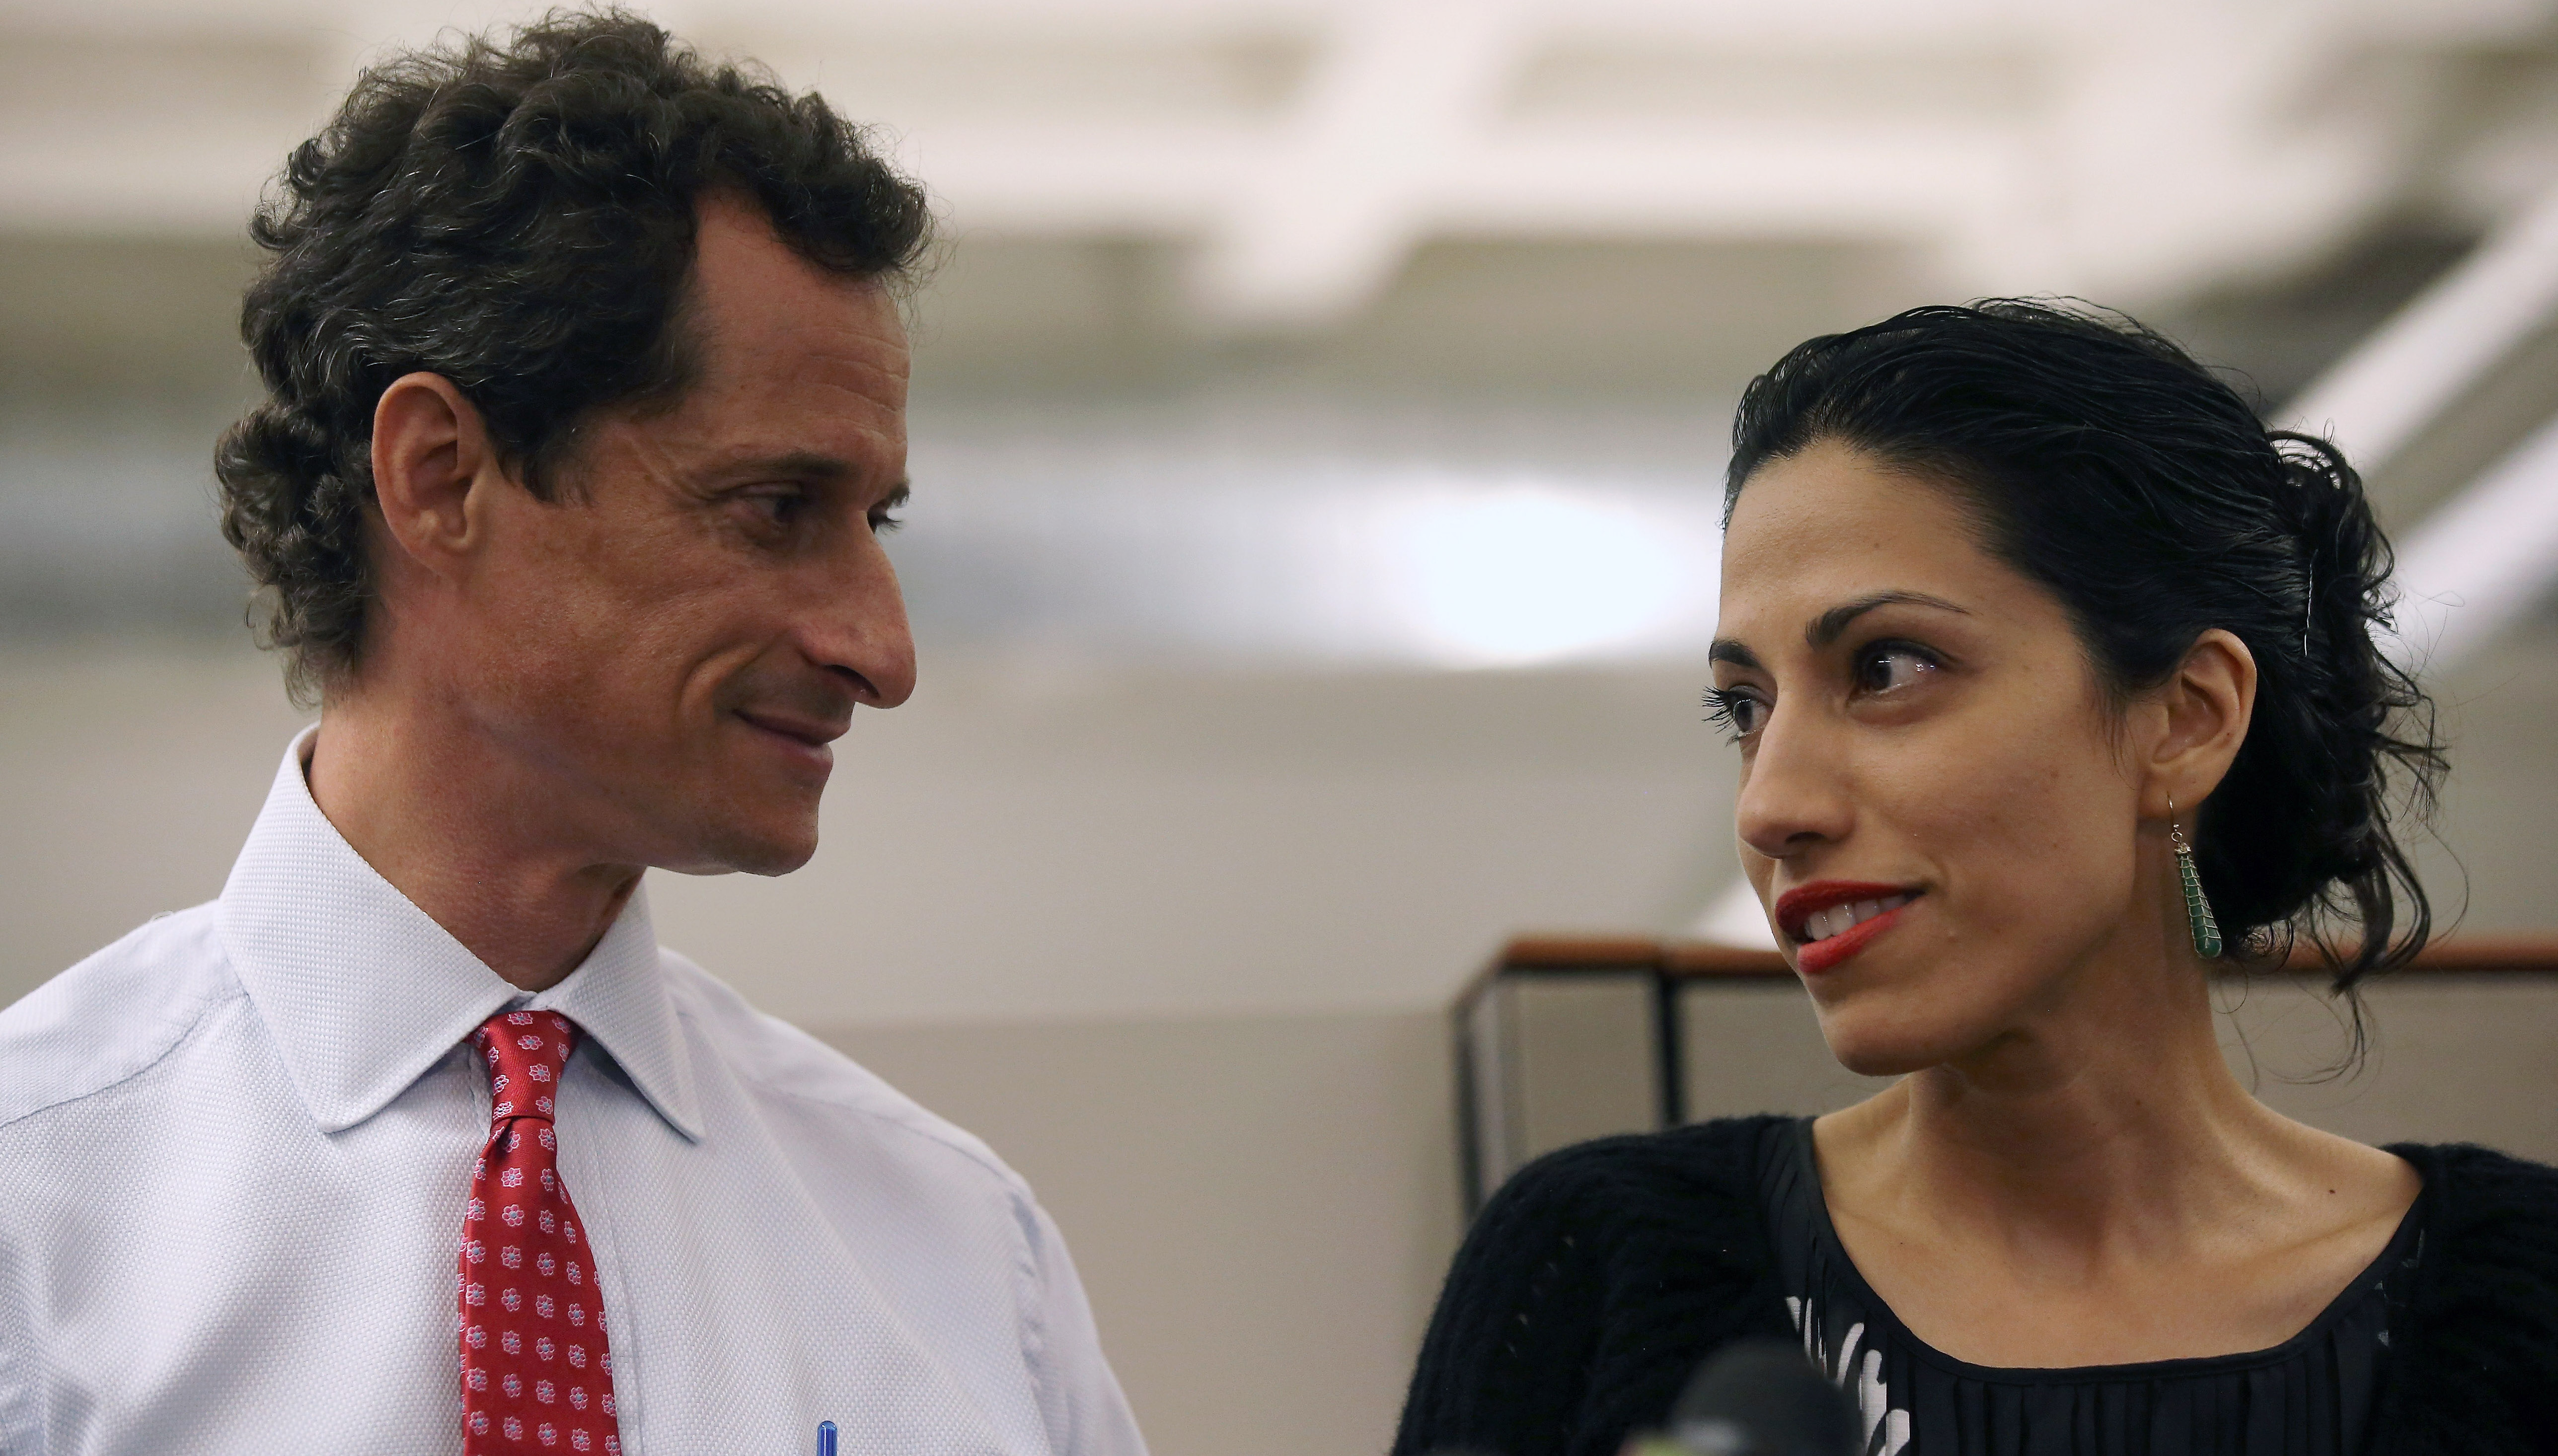 Huma Abedin Anthony Weiner, Hillary Clinton emails, FBI Director James Comey, Hillary Clinton email investigation, Huma Abedin email, Anthony Weiner sexting